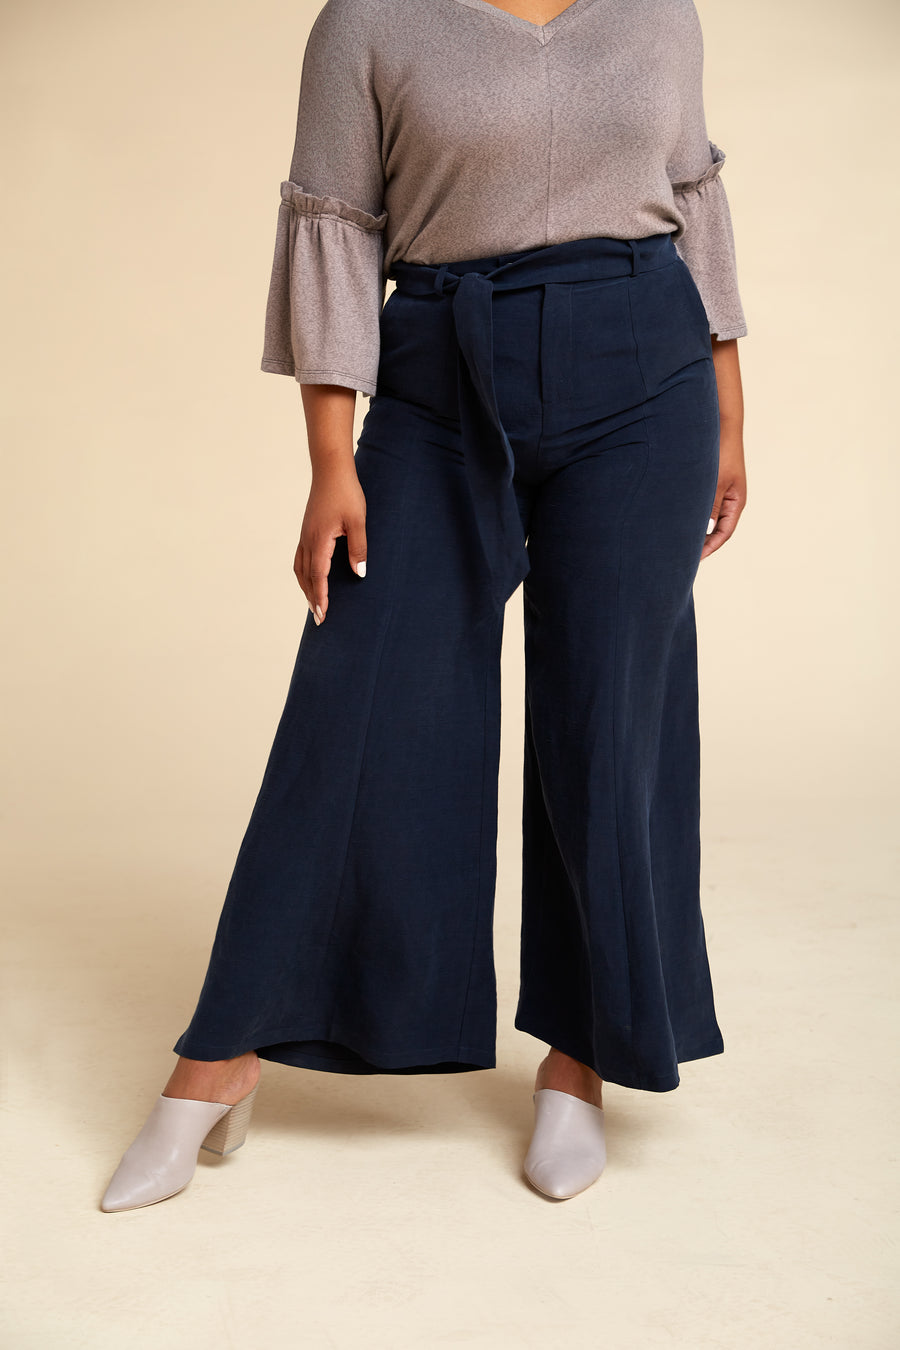 Front view of model wearing Akala Clothing's sustainable wide leg pant in Navy color, size Large